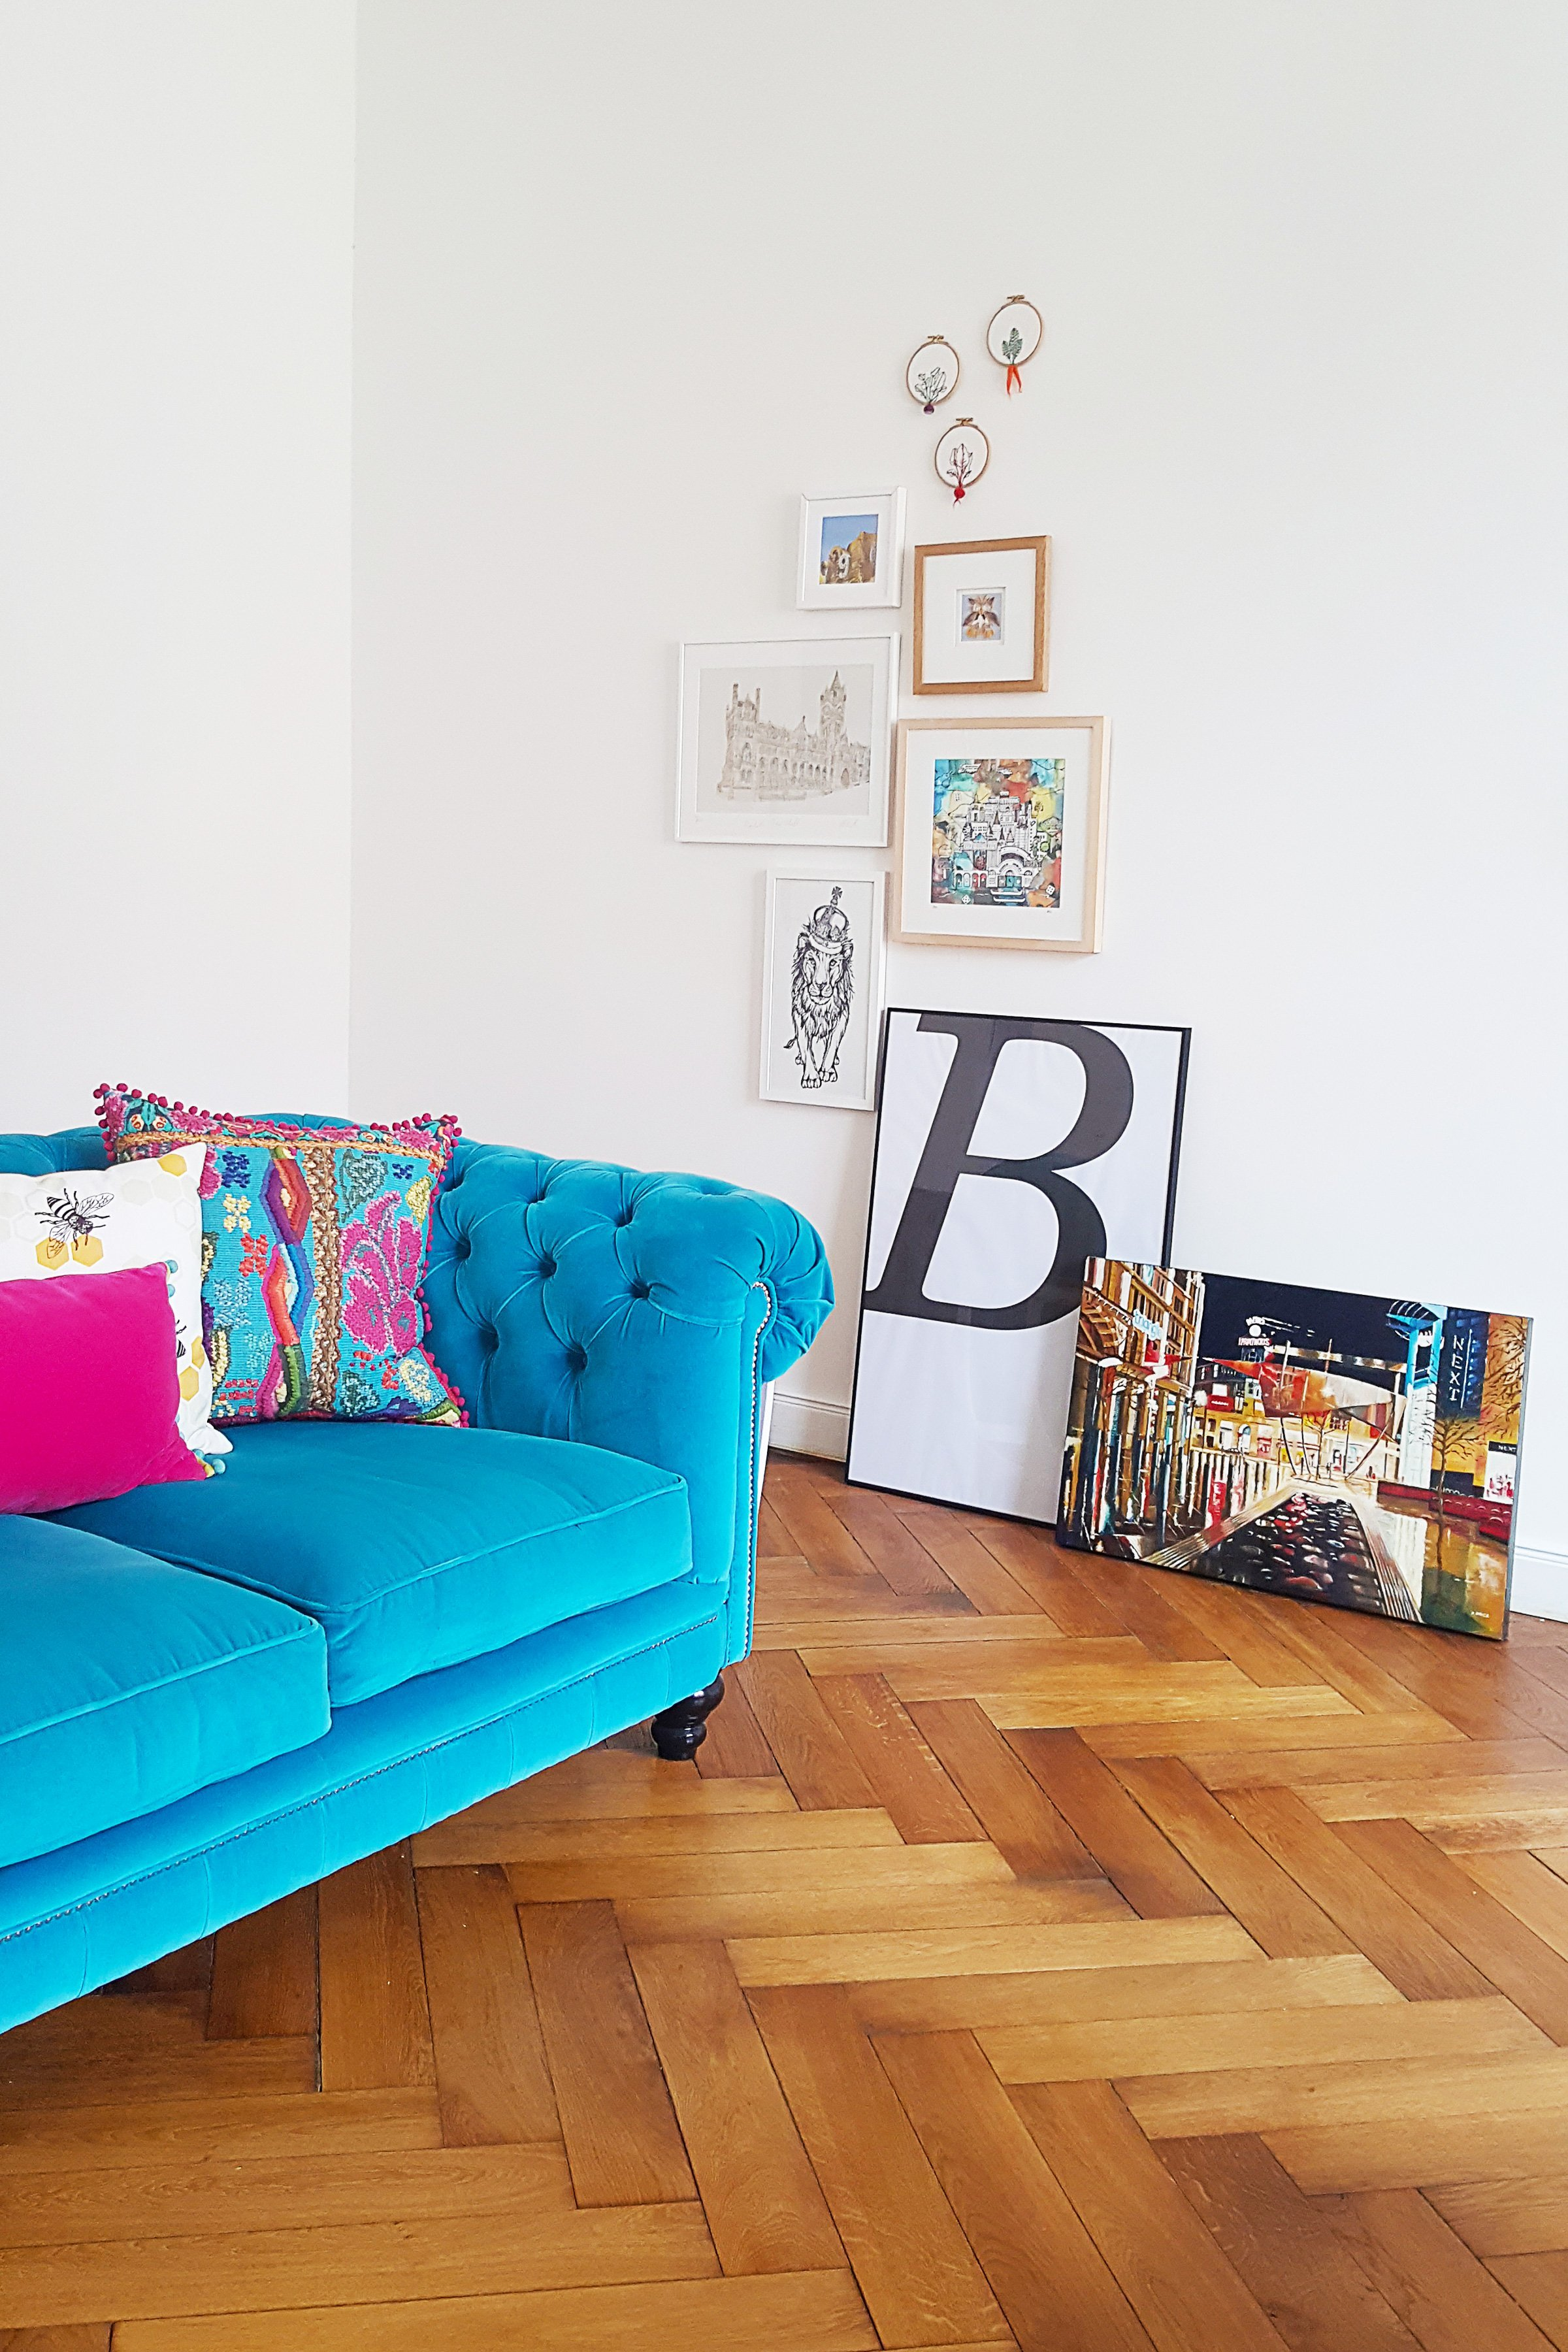 Living Room With Small Gallery Wall & Turquoise Velvet Chesterfield Sofa | Little House On The Corner